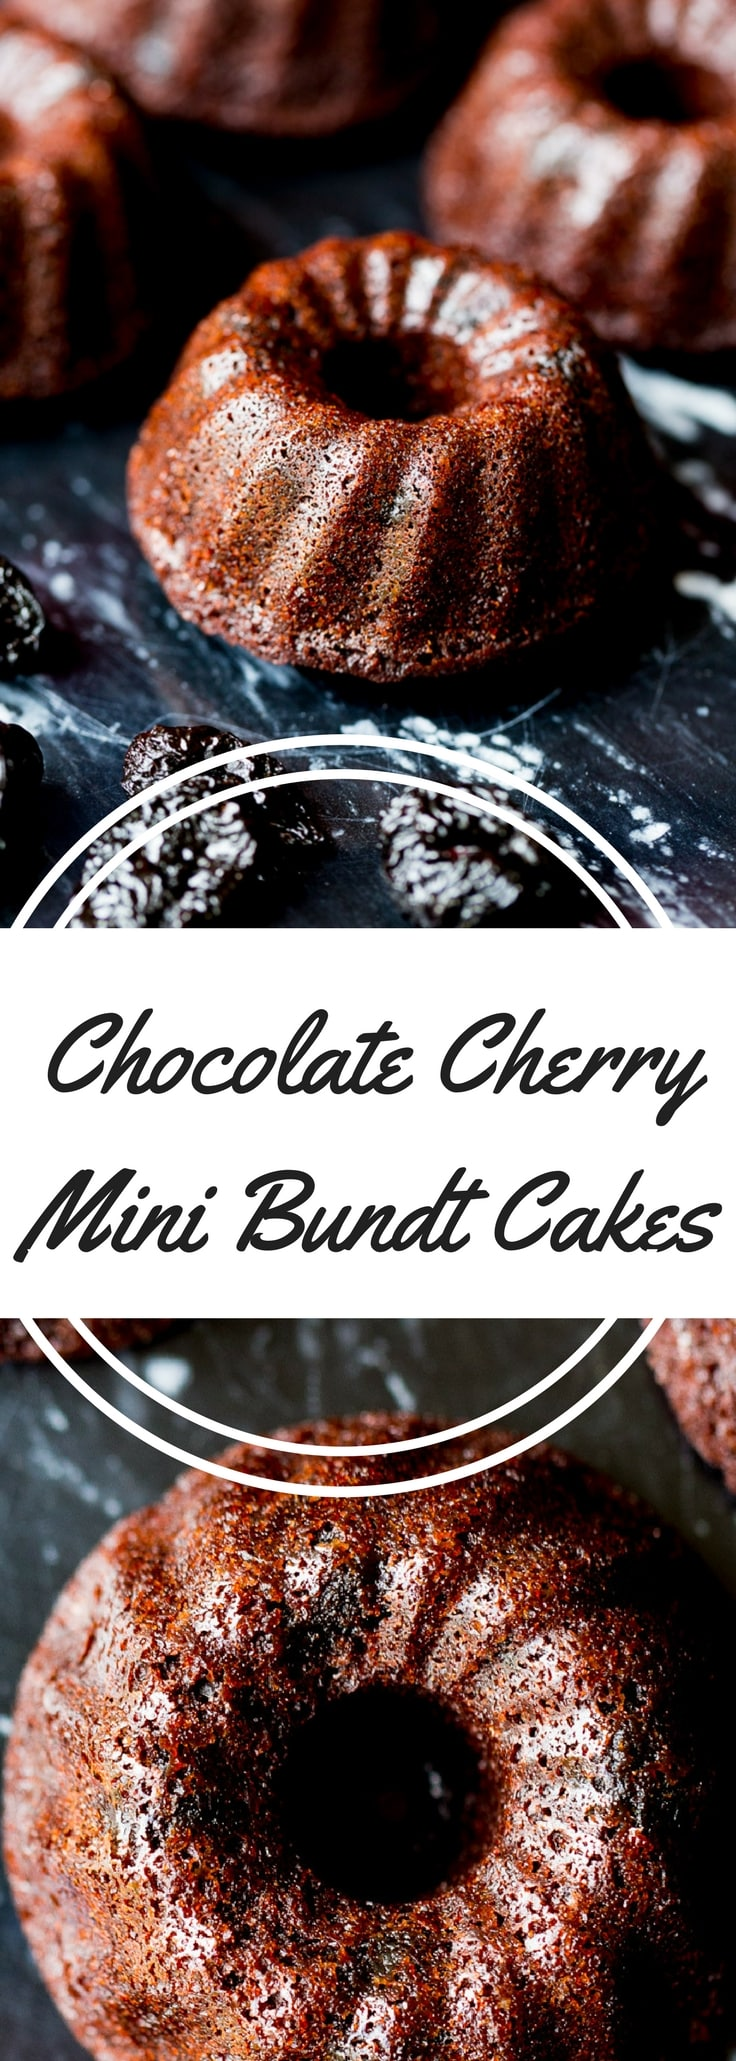 Chocolate cherry mini bundt cakes are made with pure cocoa and dried sweet cherries (soaked in a surprising ingredient to bring out the flavor).